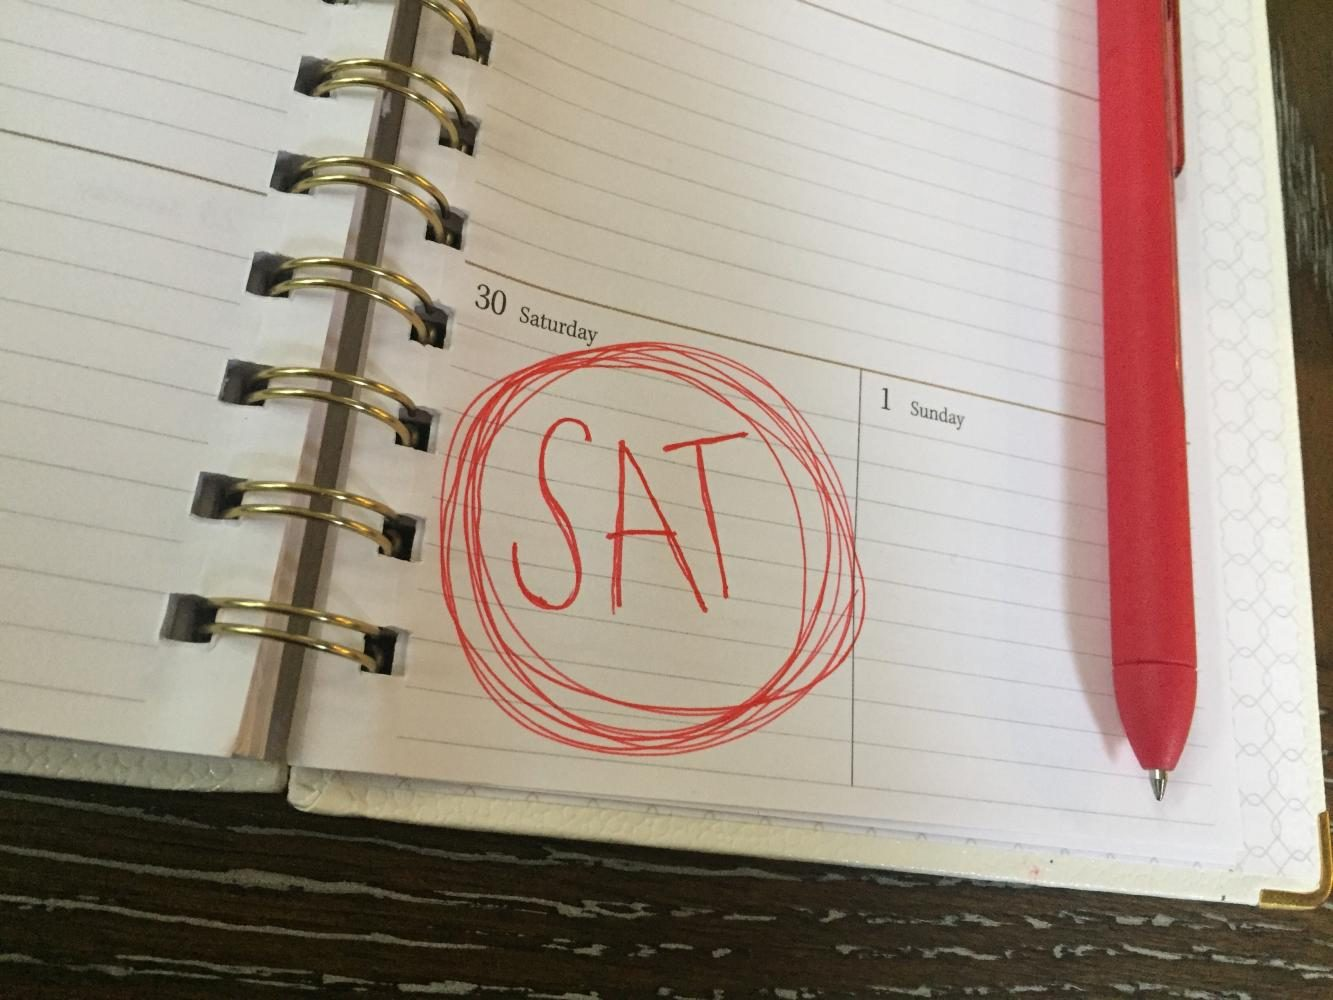 SAT written in red ink on a calendar that says Saturday 30